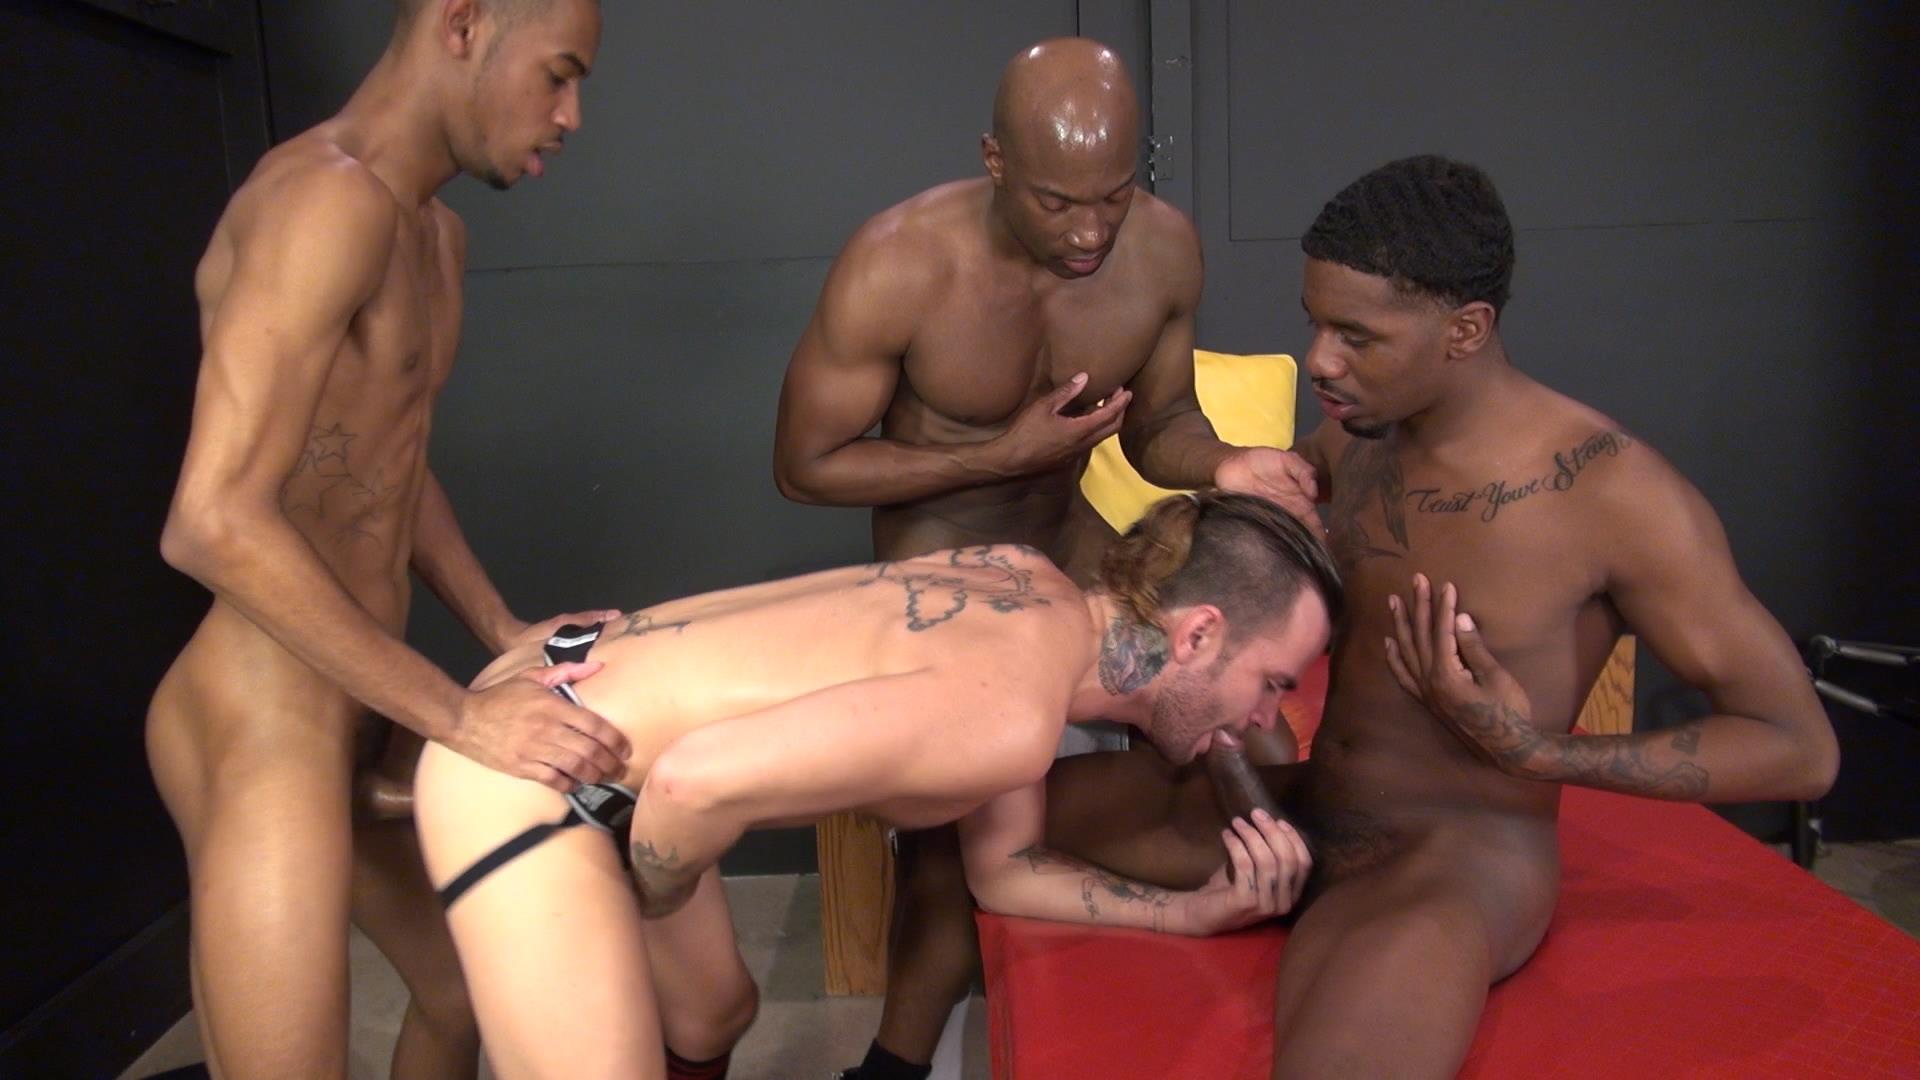 Raw-and-Rough-Champ-Robinson-Lukas-Cipriani-Knockout-Tigger-Redd-BBBH-Amateur-Gay-Porn-06 White Boy Gets A Breeding By Three Big Black Dicks